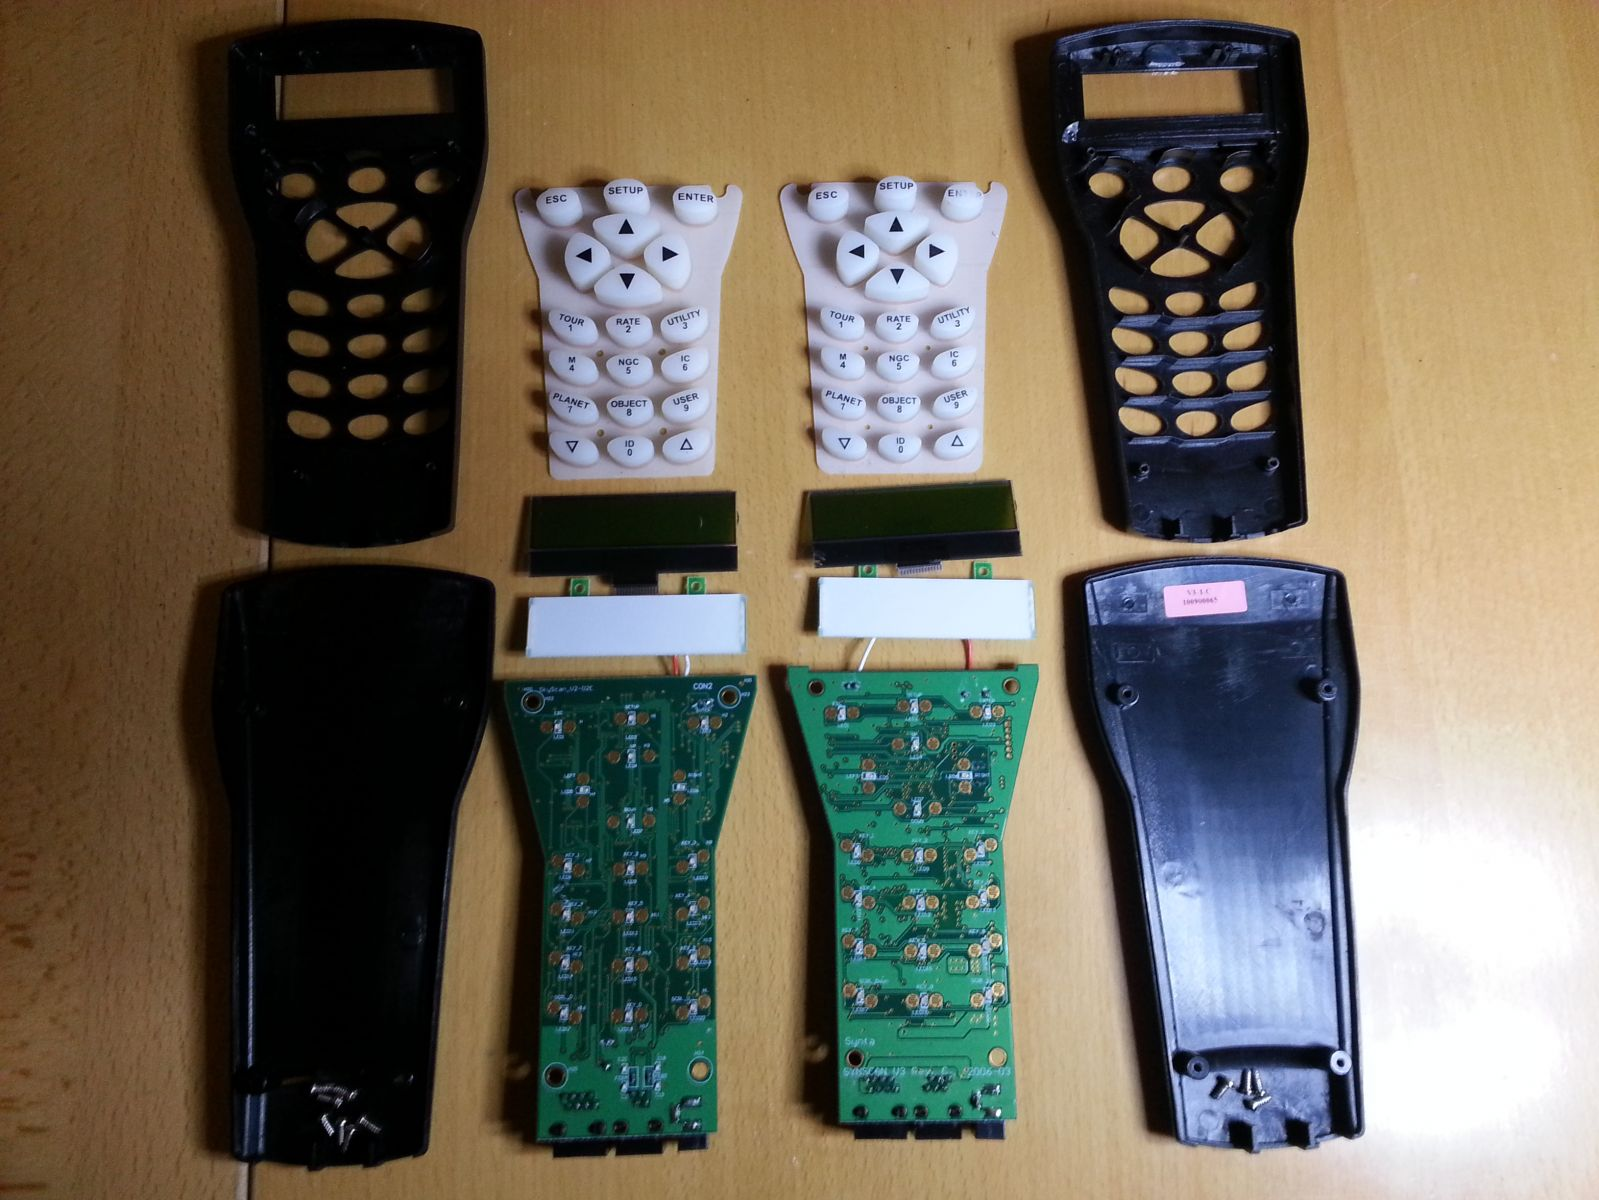 Exploded view Comparison of controllers